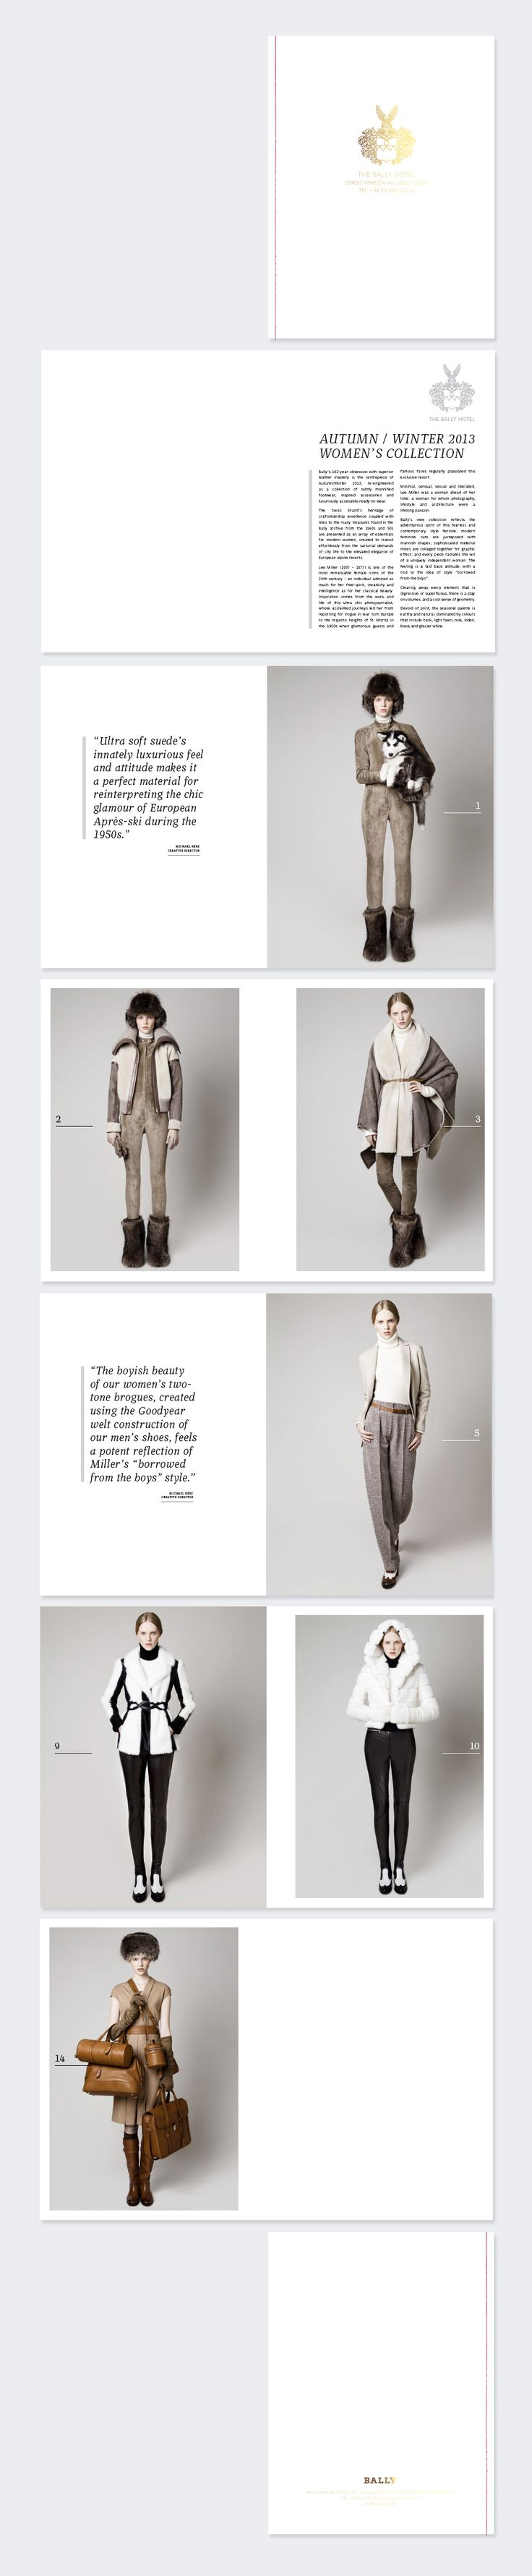 TAMSIN ALLEN / CREATIVE — Bally lookbook magazine